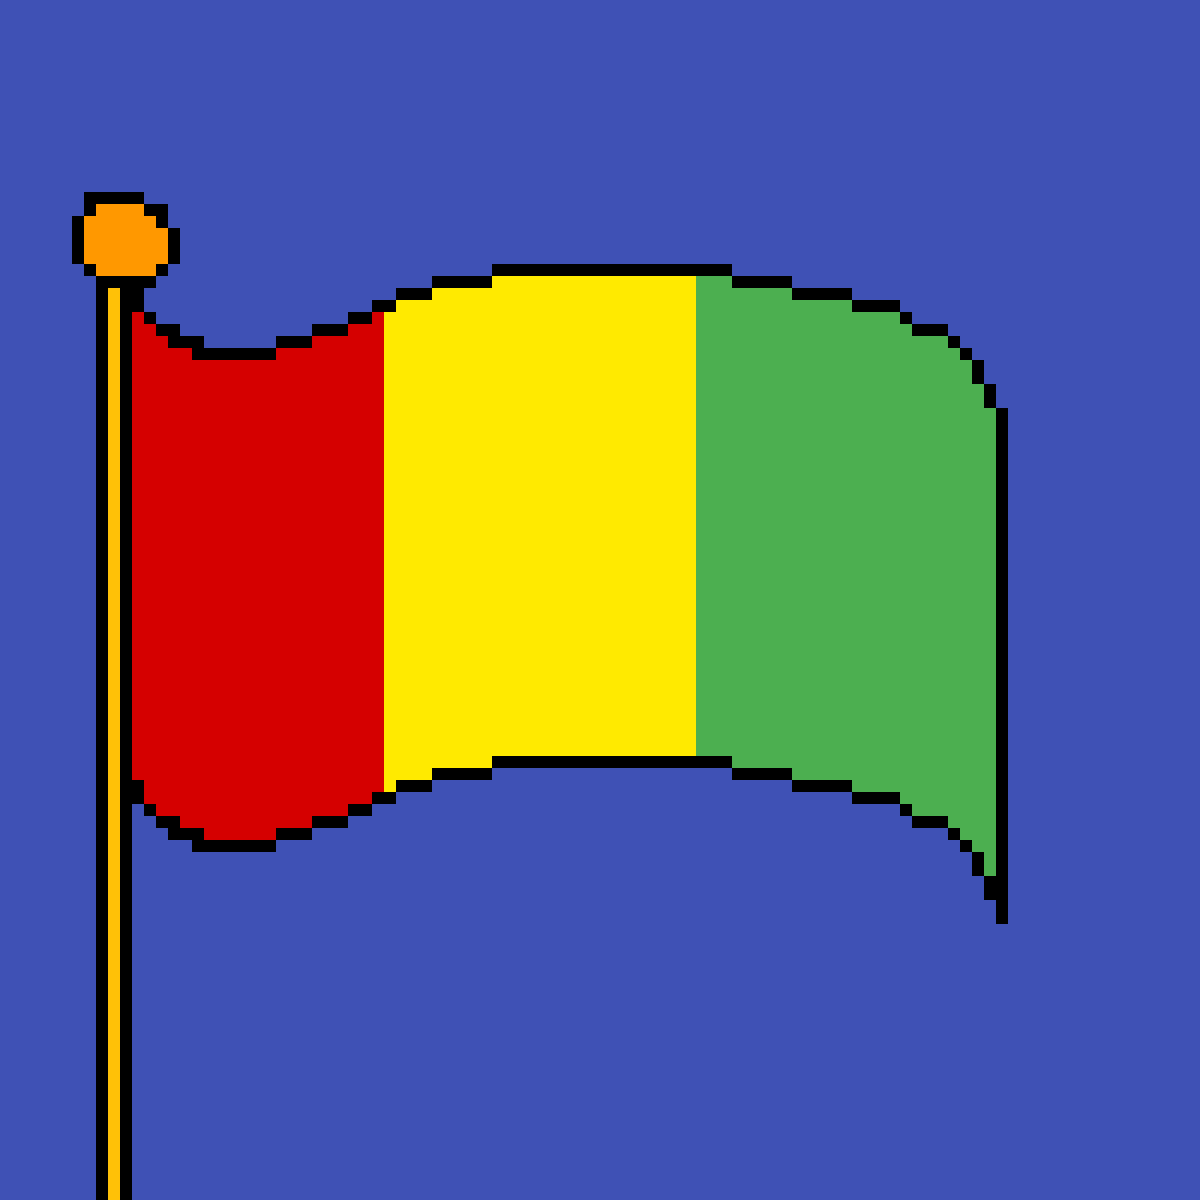 The flag of Guinea by poison-darts317